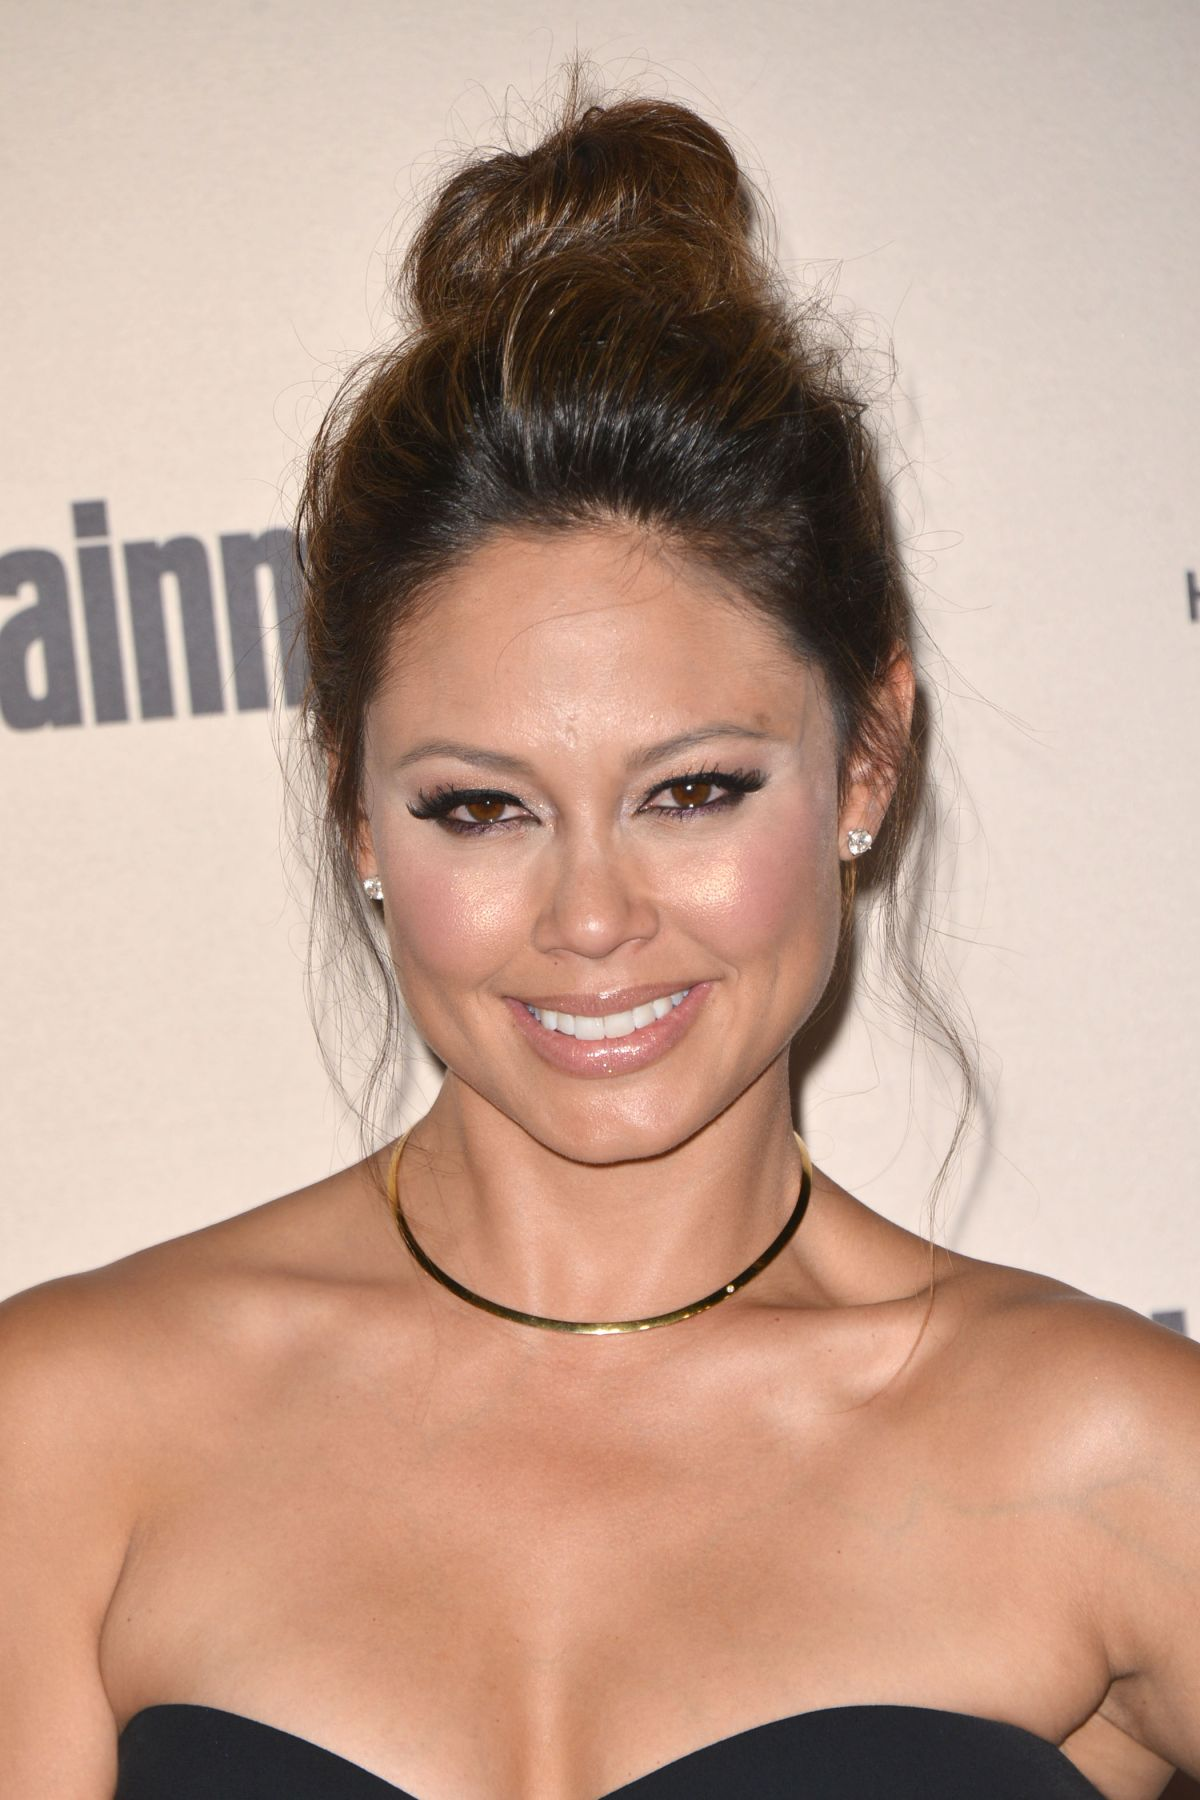 Vanessa Lachey At 2015 Entertainment Weekly Pre-Emmy Party ... Vanessa Lachey